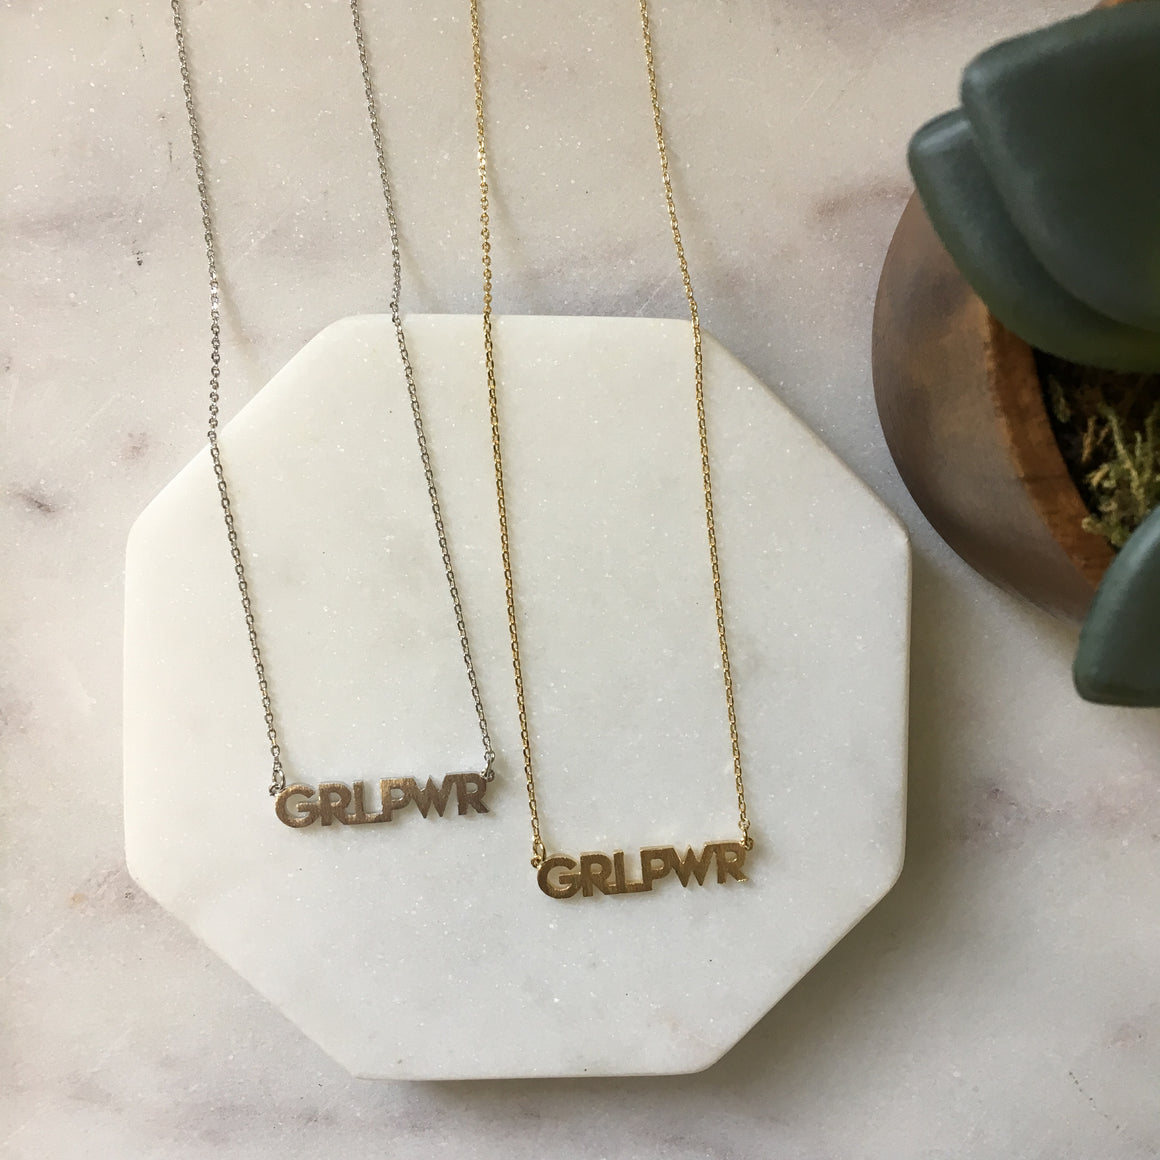 Girl Power Necklace - pretty-simple-2